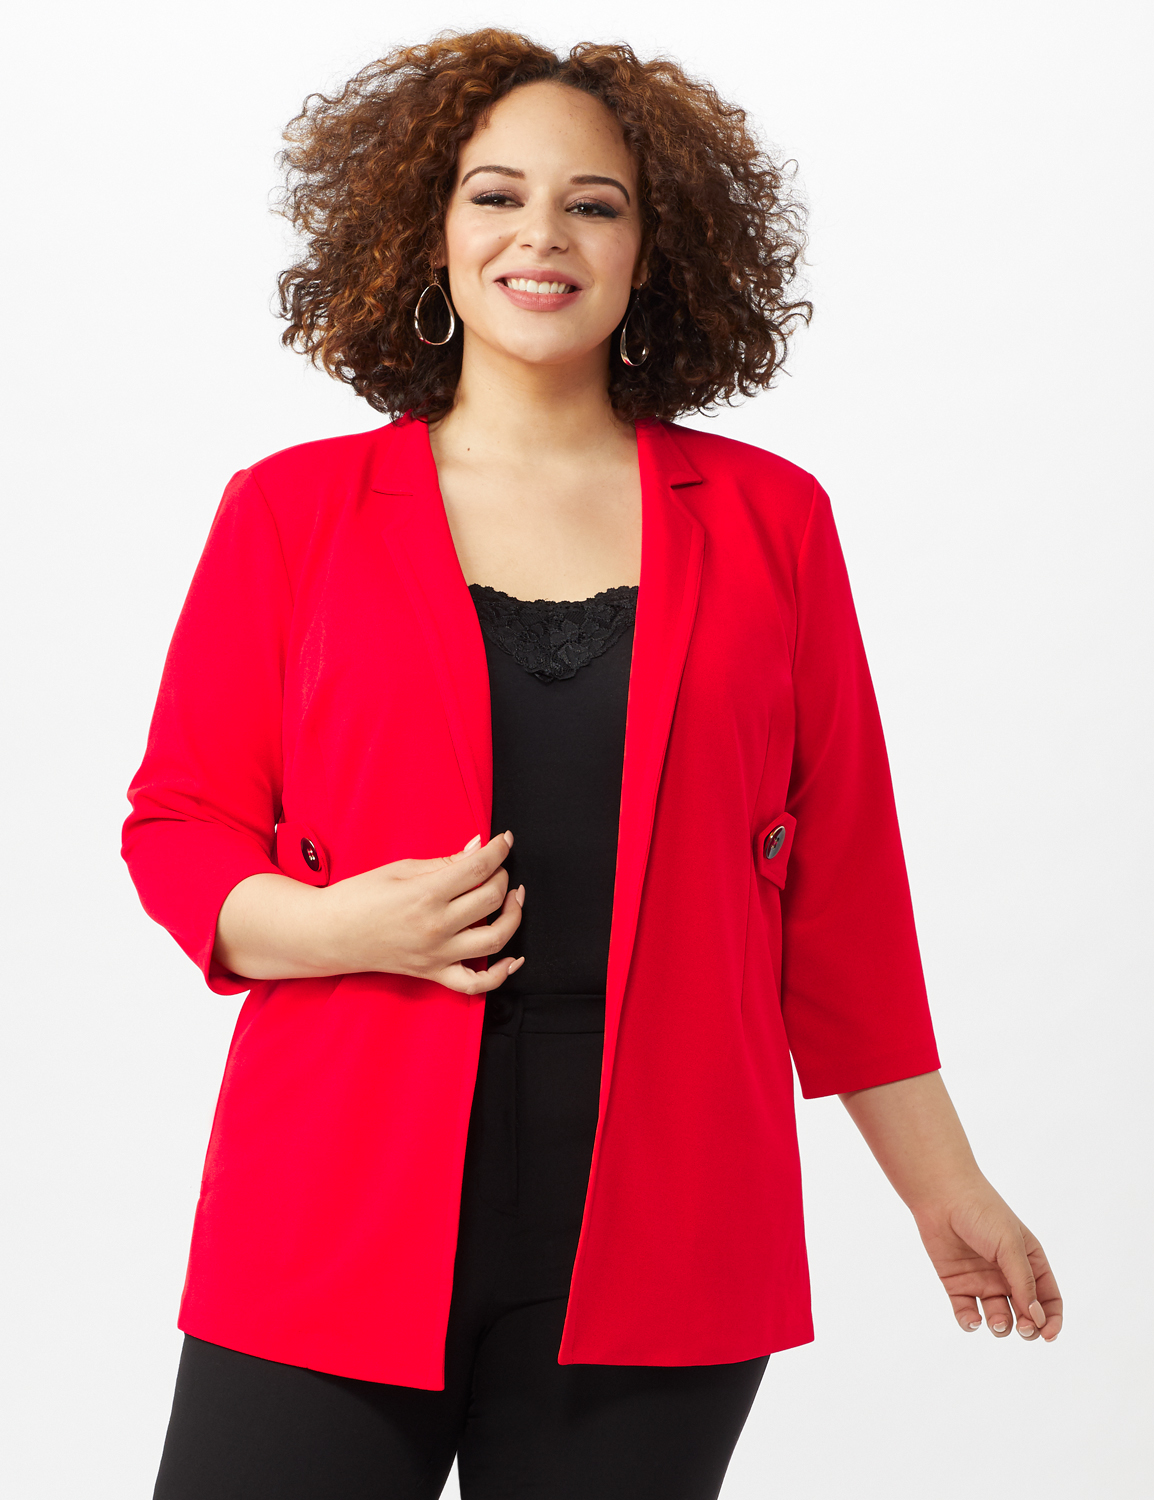 Collar - Less Notched Topper With Buttons Side Tabs -Infared - Front